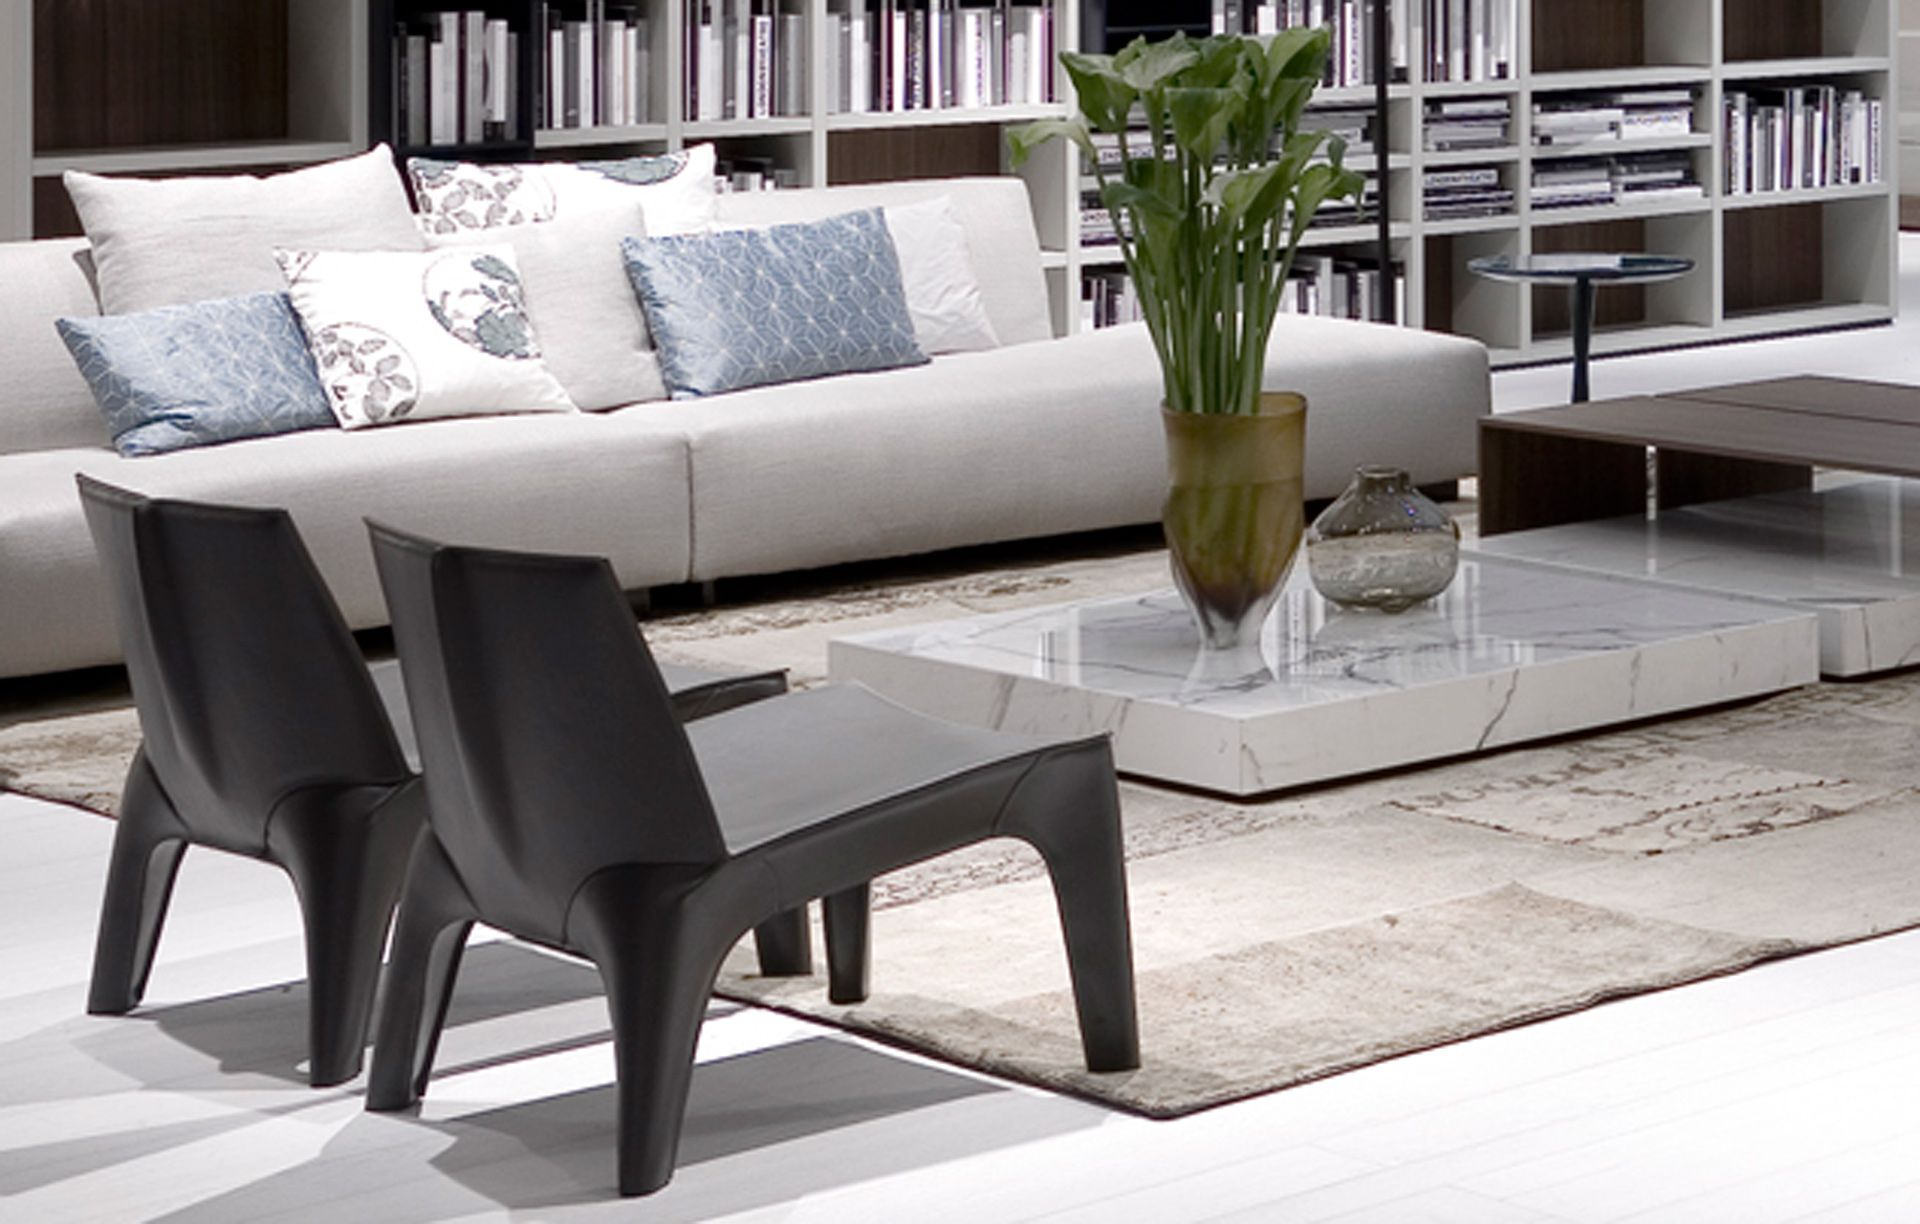 Awesome Best Sofa Manufacturers Good 56 On Contemporary Inspiration With